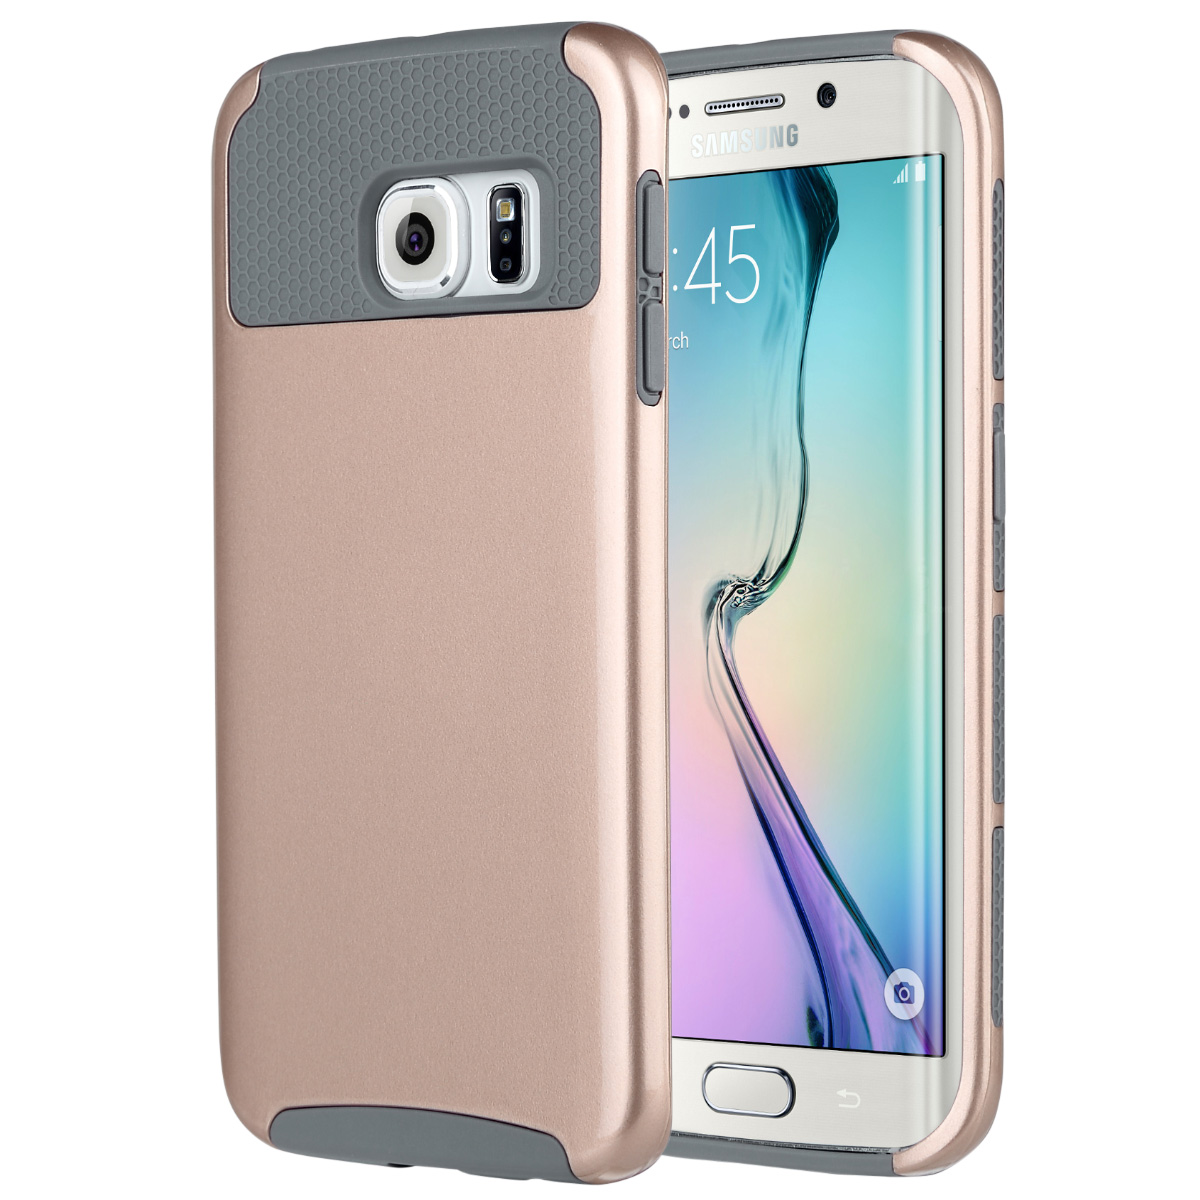 "ULAK Galaxy S6 Edge Case, 2 in 1 Hybrid Dual Layer Protective Slim Case Cover for Samsung Galaxy S6 Edge (5.1"" inch) 2015 Release"